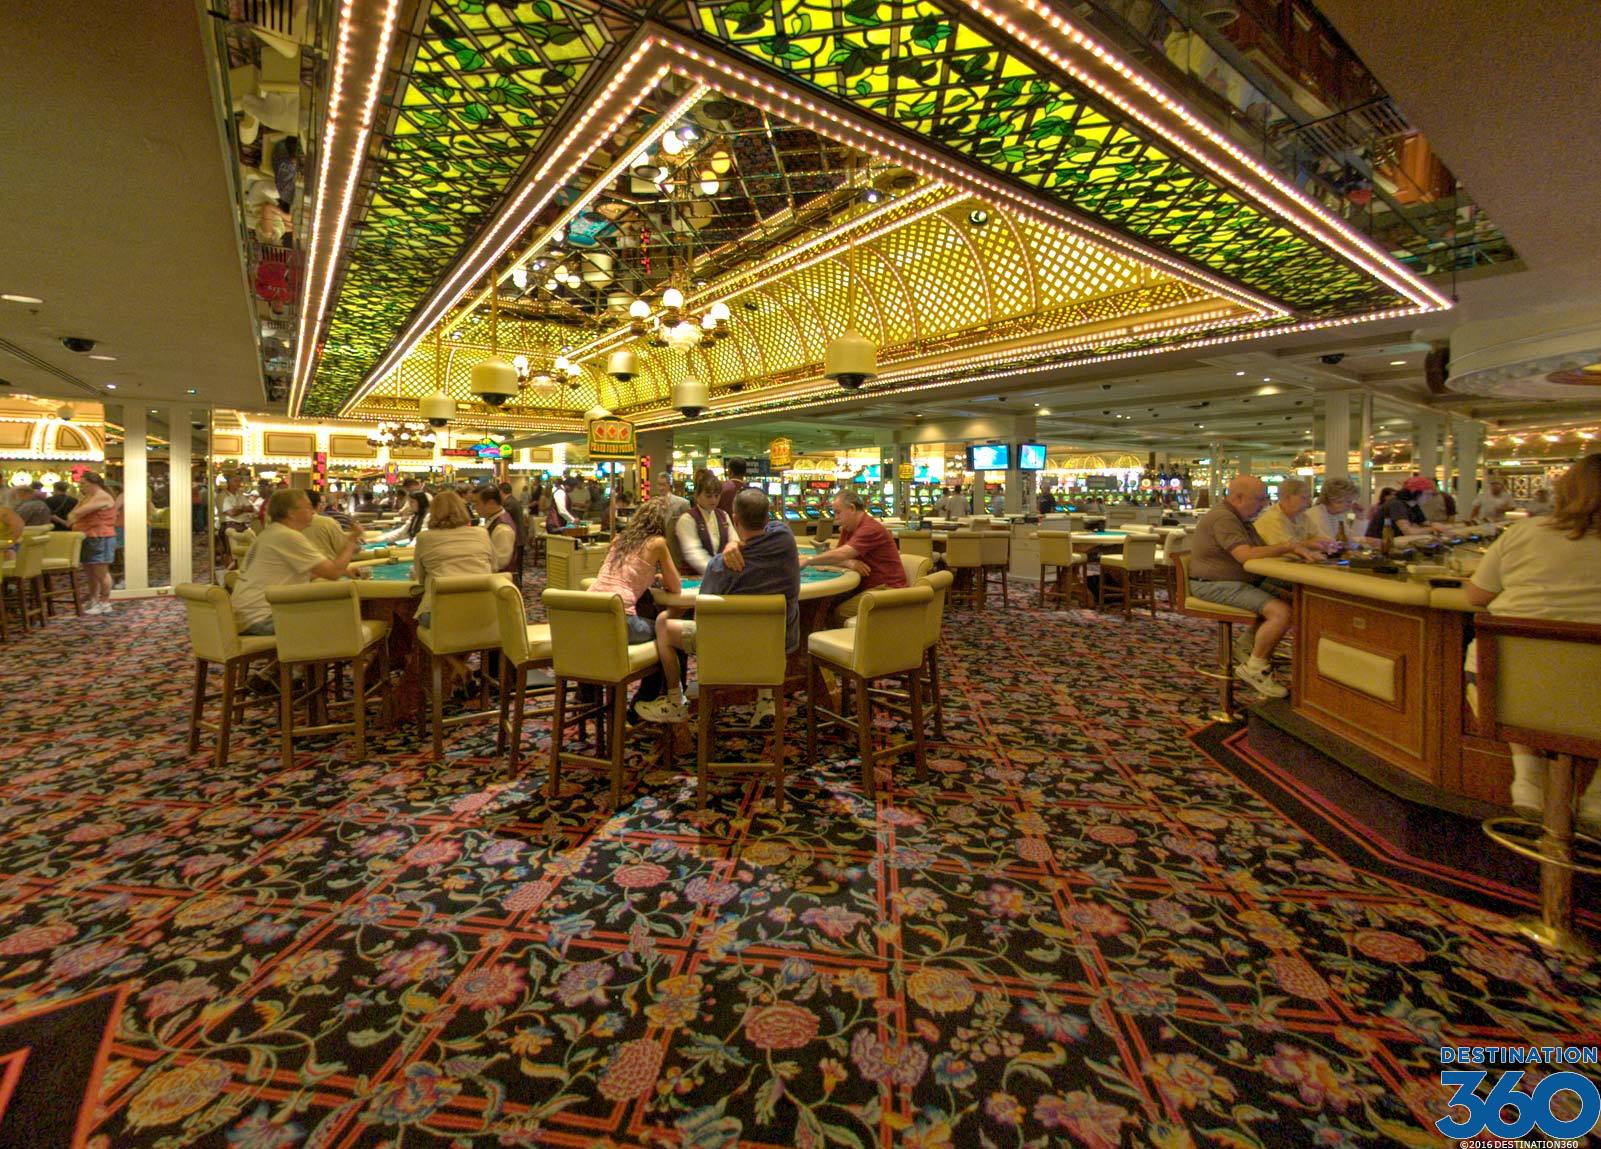 Best payout casinos near me